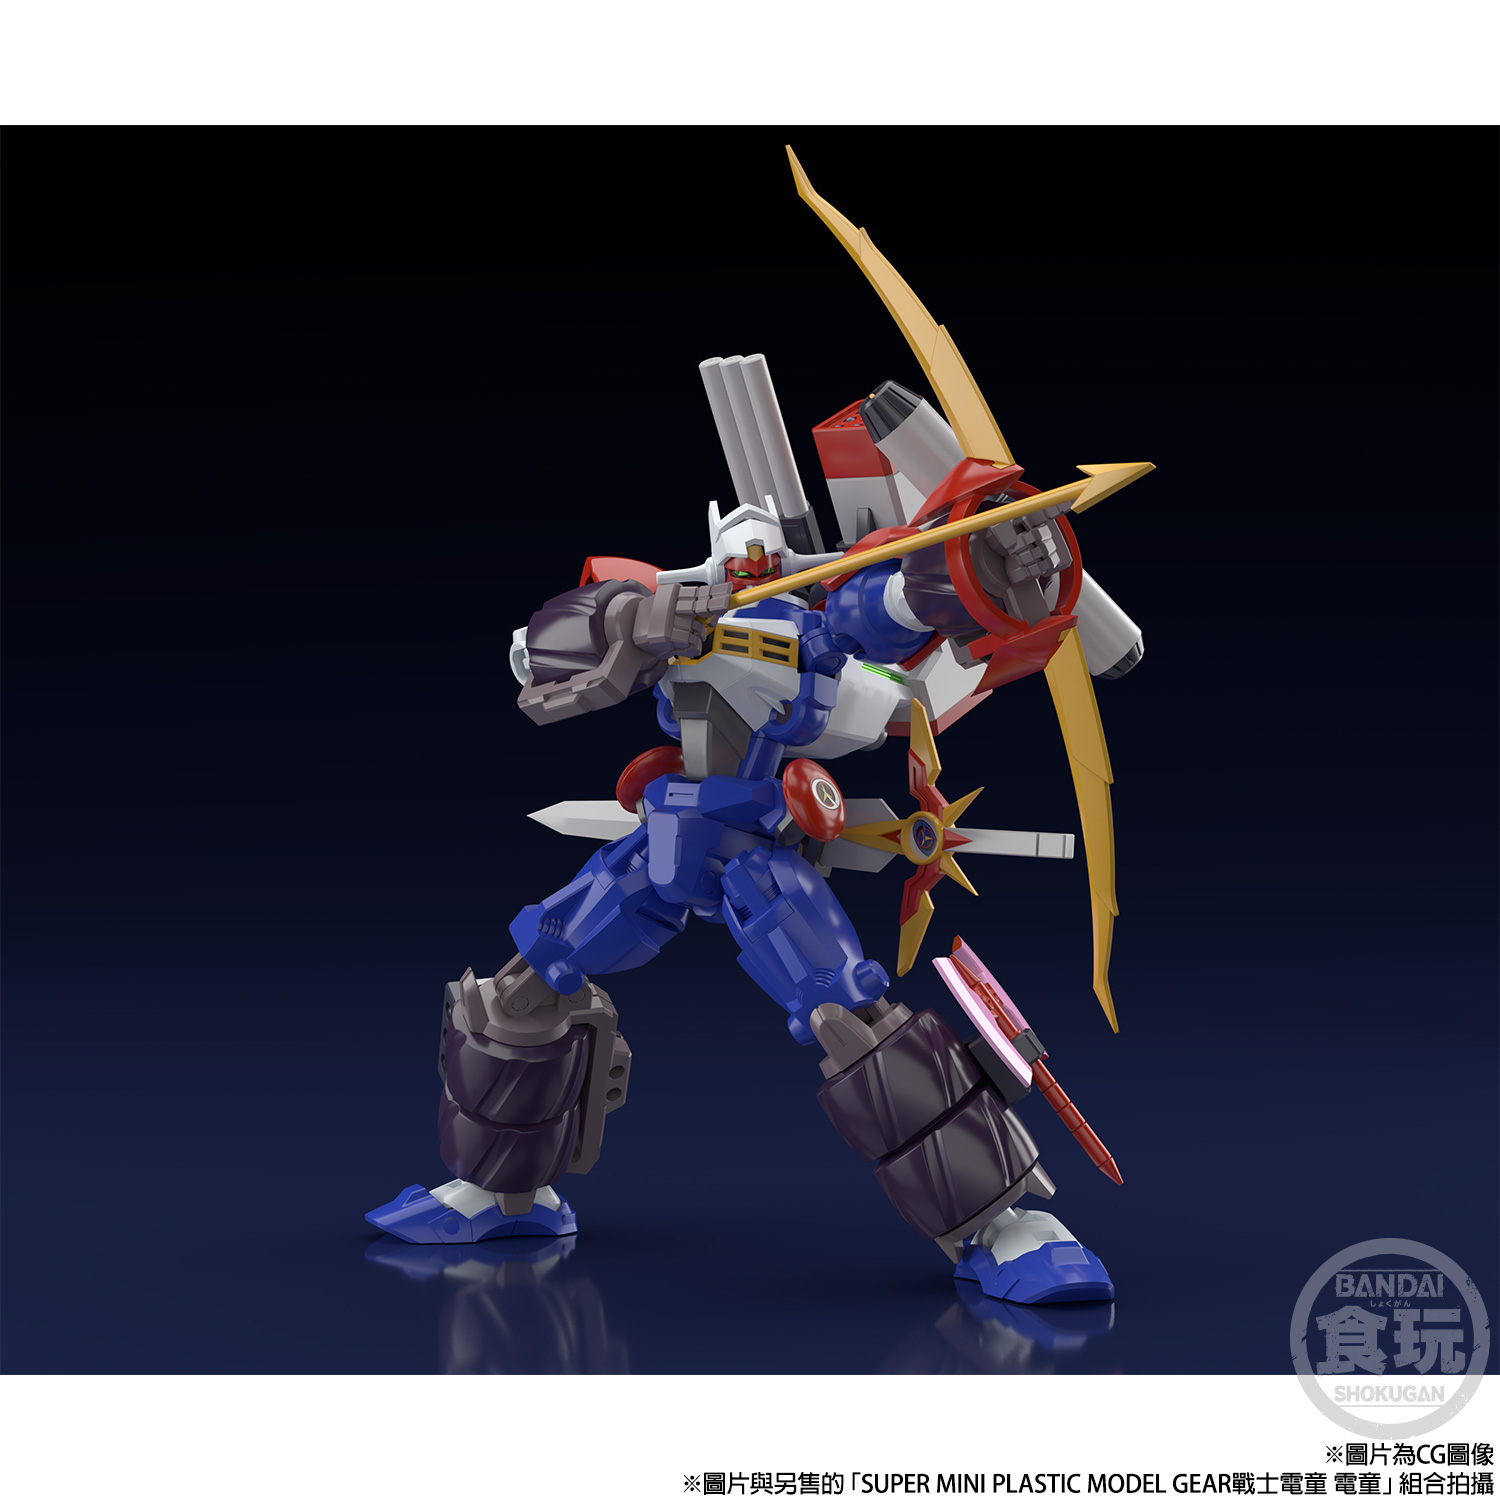 SUPER MINI PLASTIC MODEL GEAR FIGHTER DENDOH FULL ARMOR DENDOH OPTION PARTS & GATLING BOAR & DRAGON FLARE SET W/O GUM